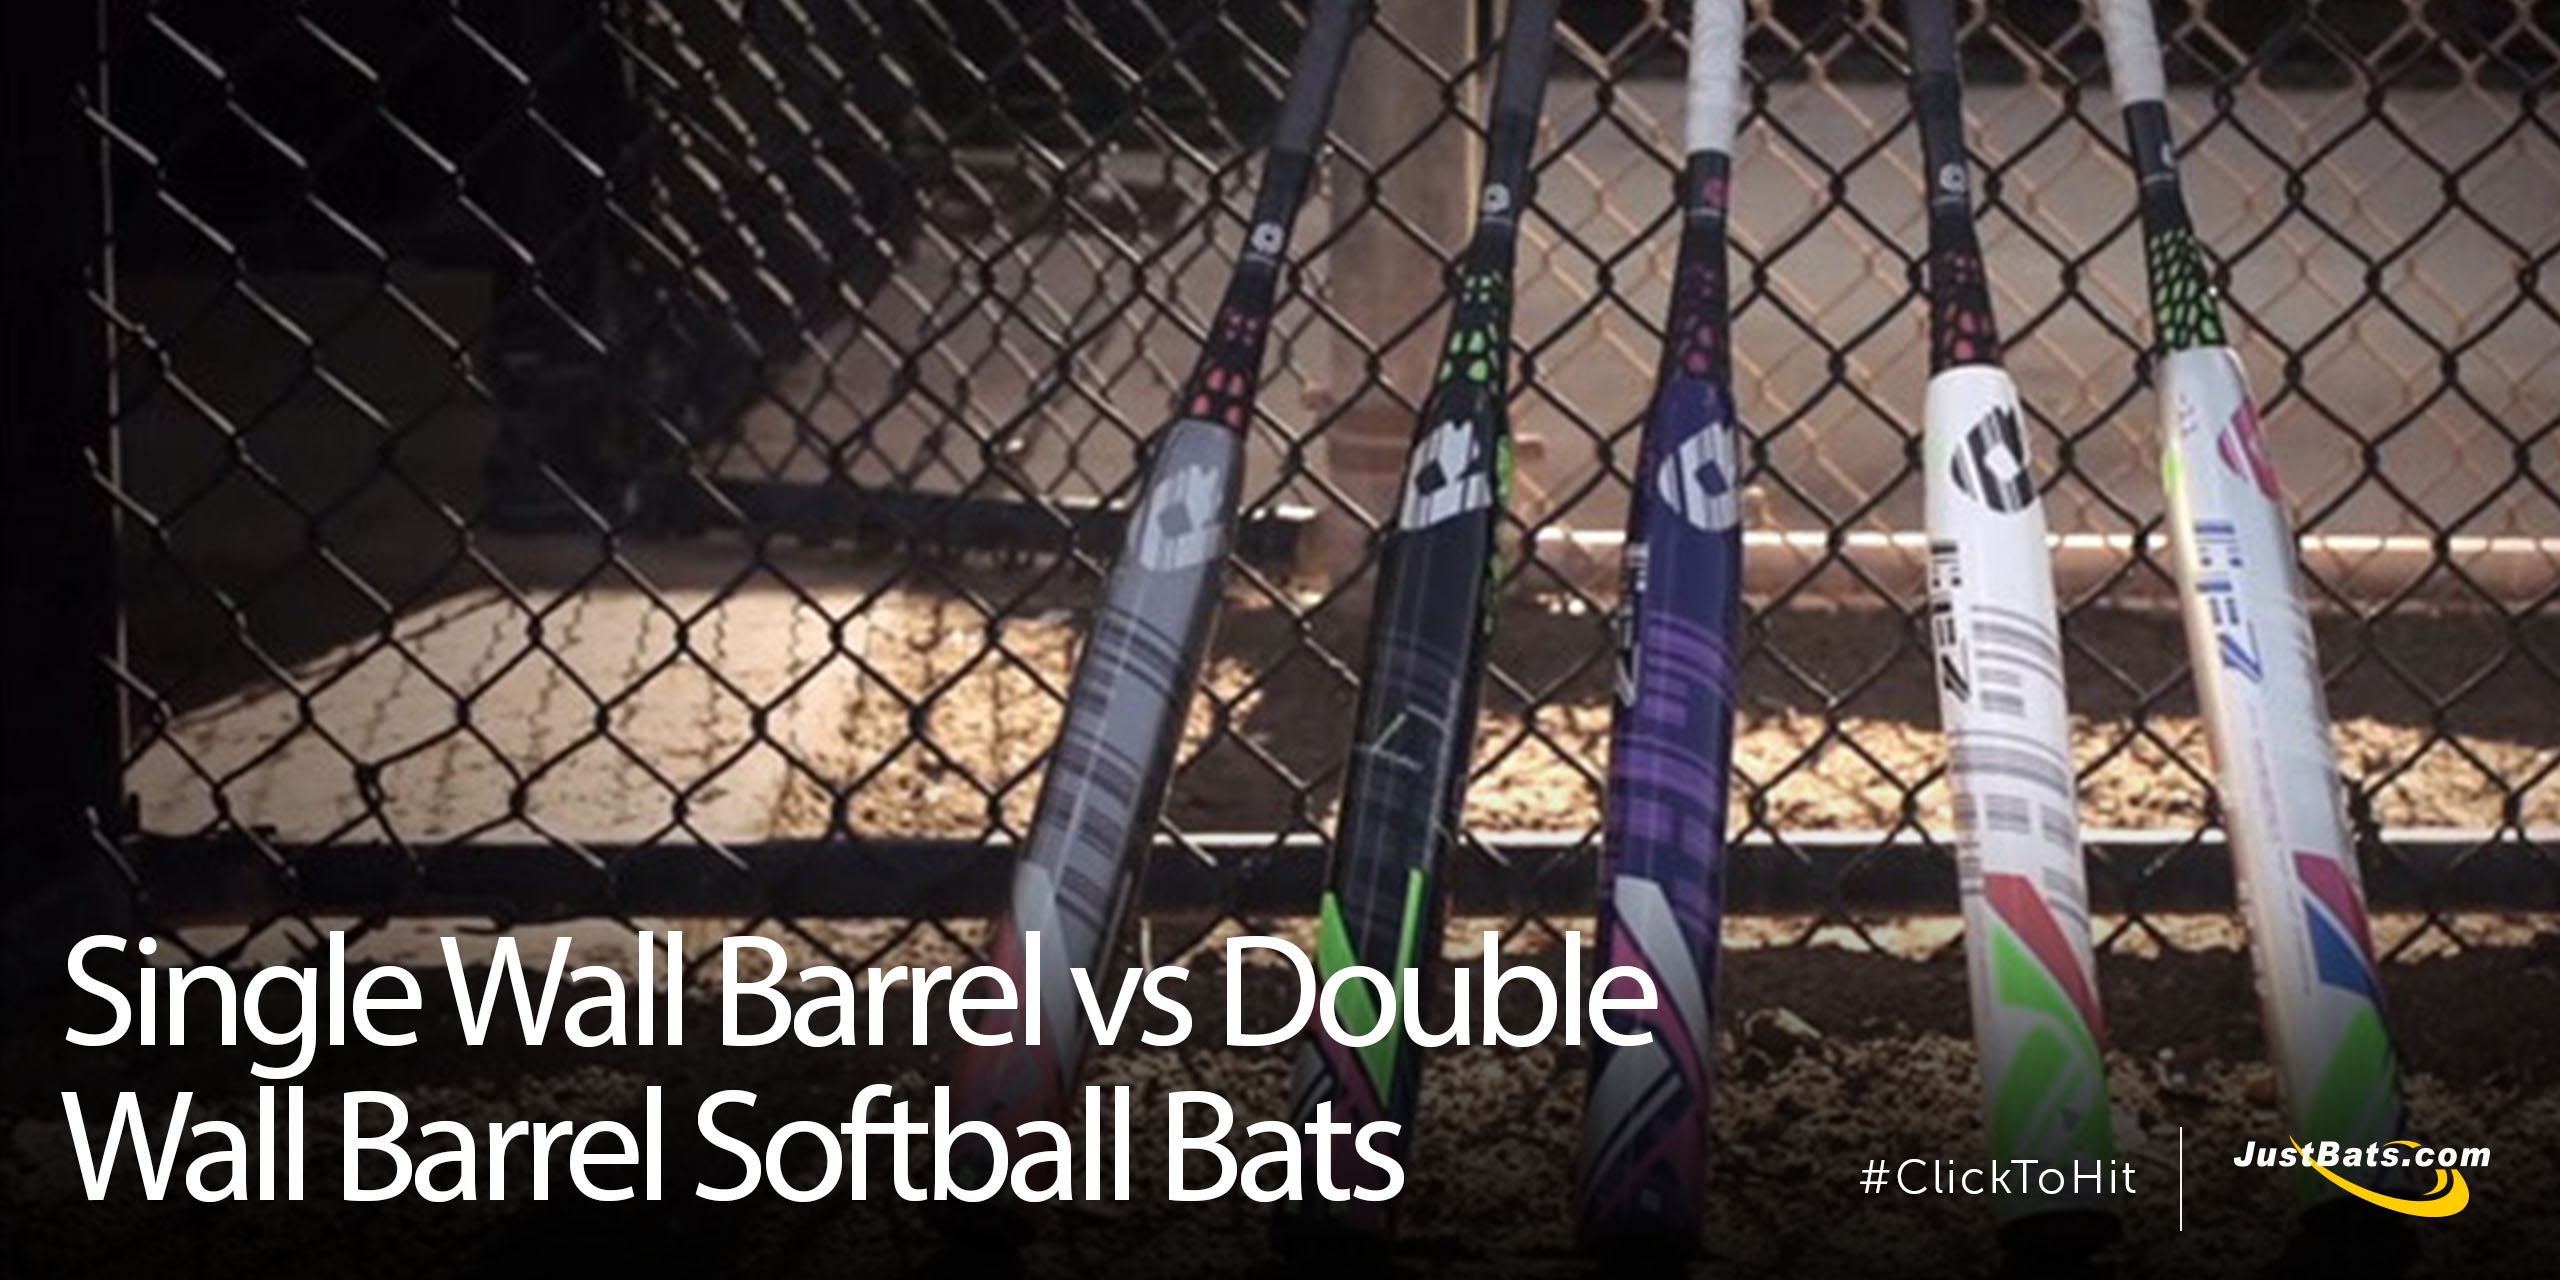 Single Wall Barrel Vs Double Wall Barrel Softball Bats